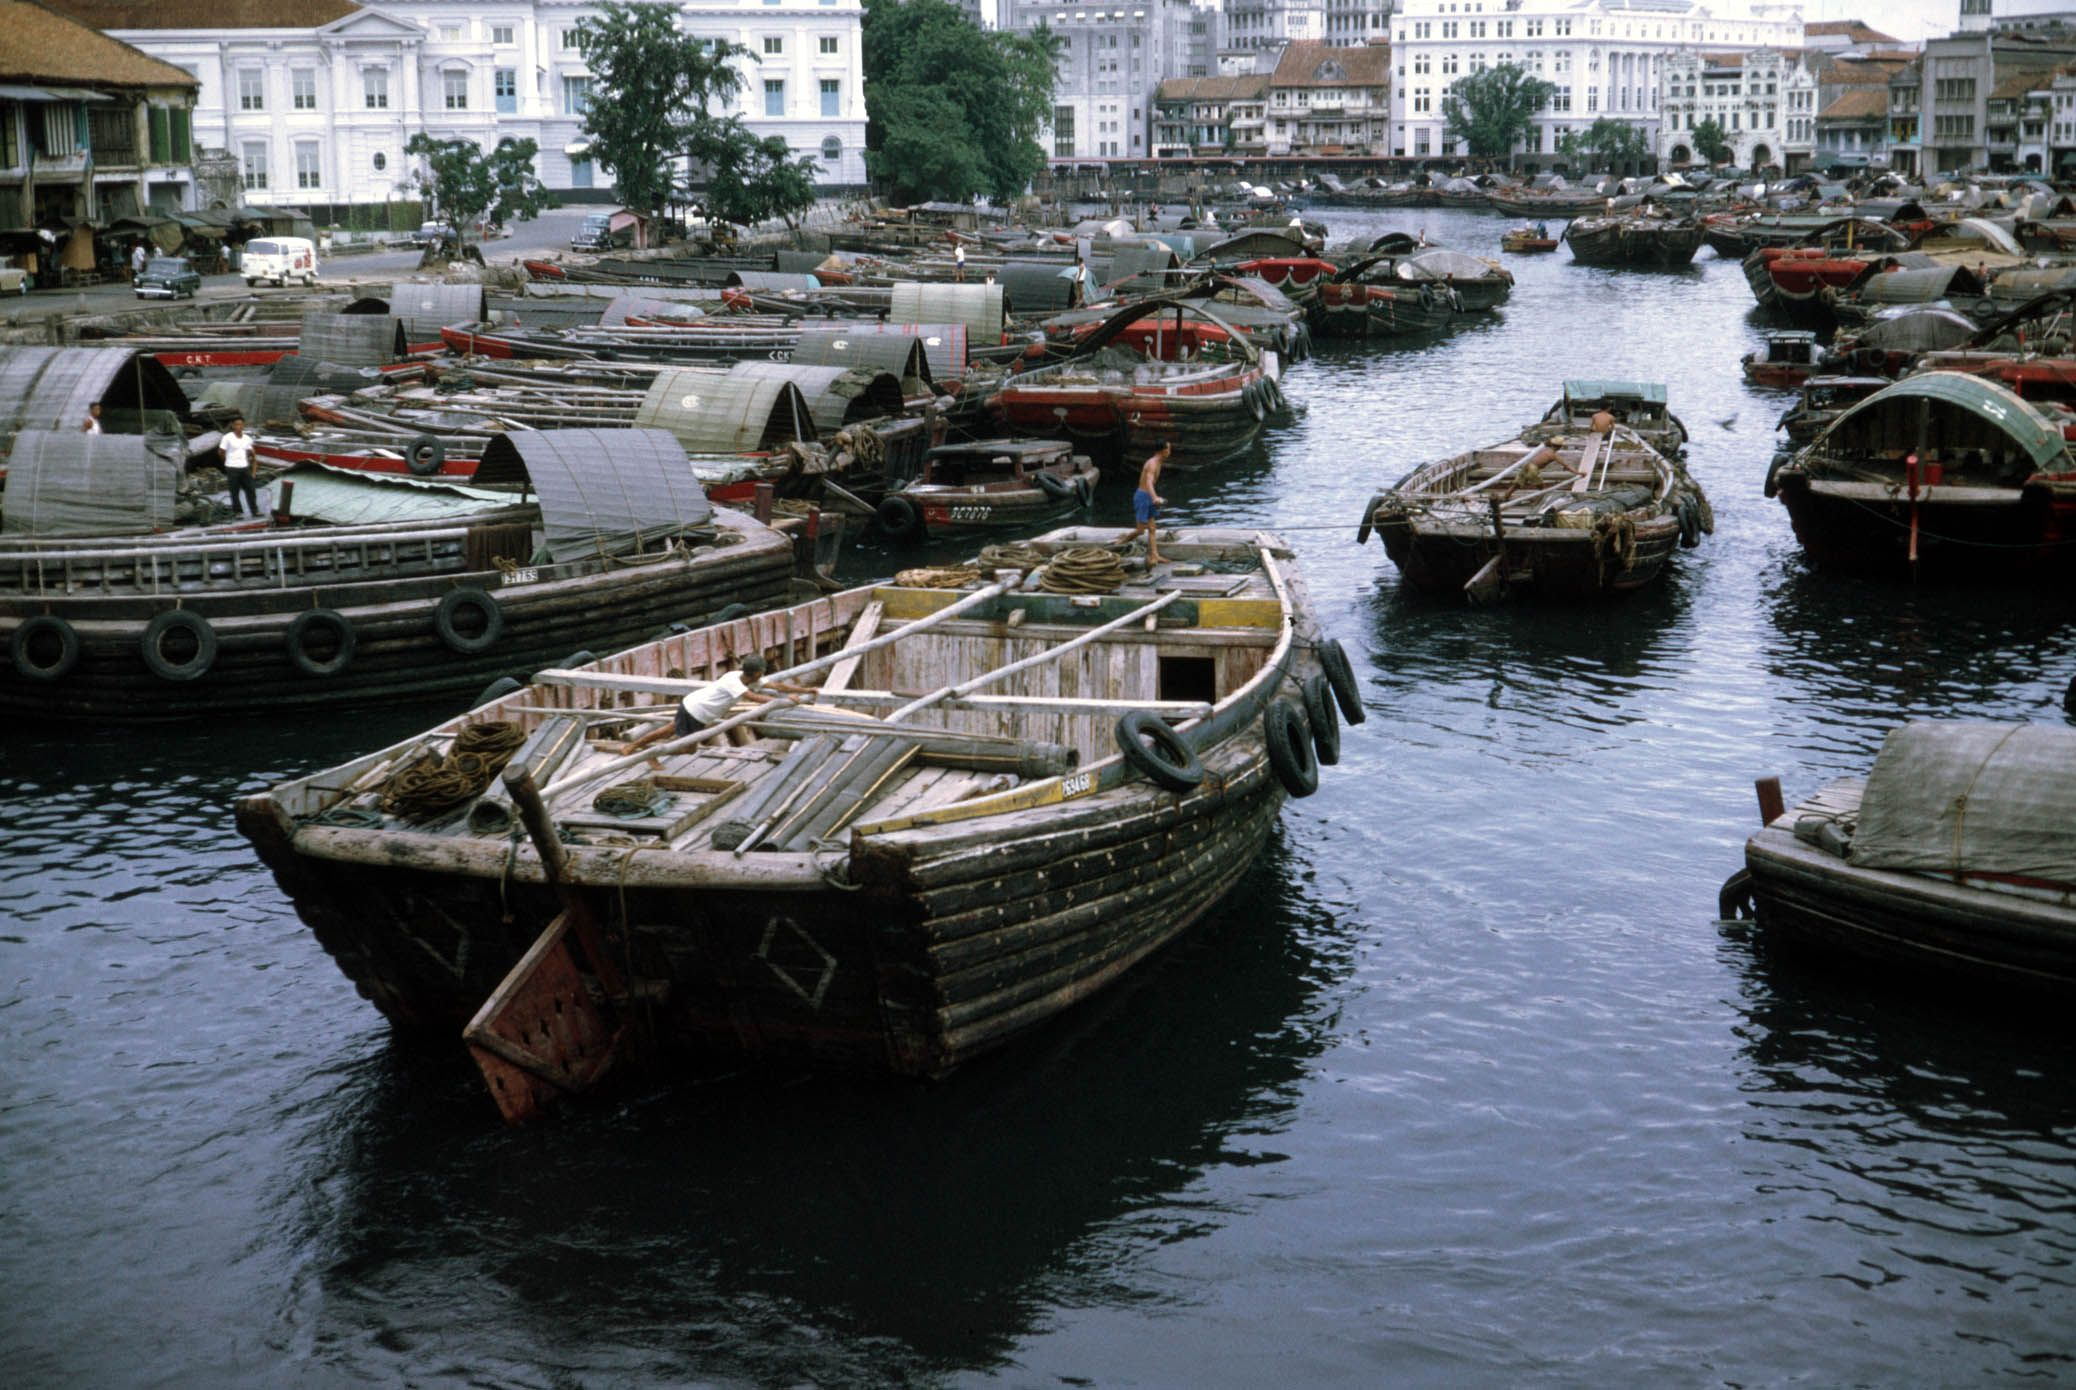 In The Past Singapore River Is Filled With Twakow Ands And Tonangs Which Means Bumboats In Hokkien And Malay Re Singapore Attractions Singapore River Singapore